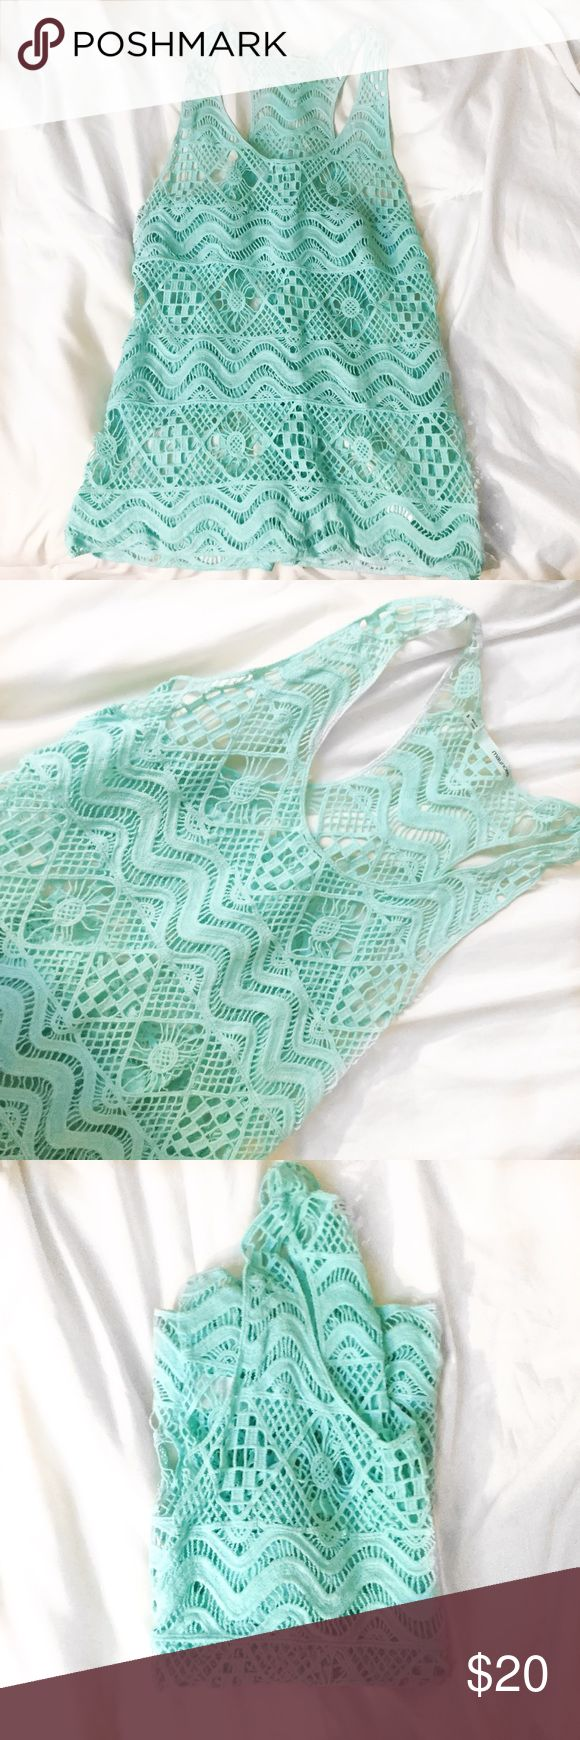 Turquoise crochet tank top A mint crocheted tank top by Maurice's. Size small. True to size. Excellent condition. Maurices Tops Tank Tops